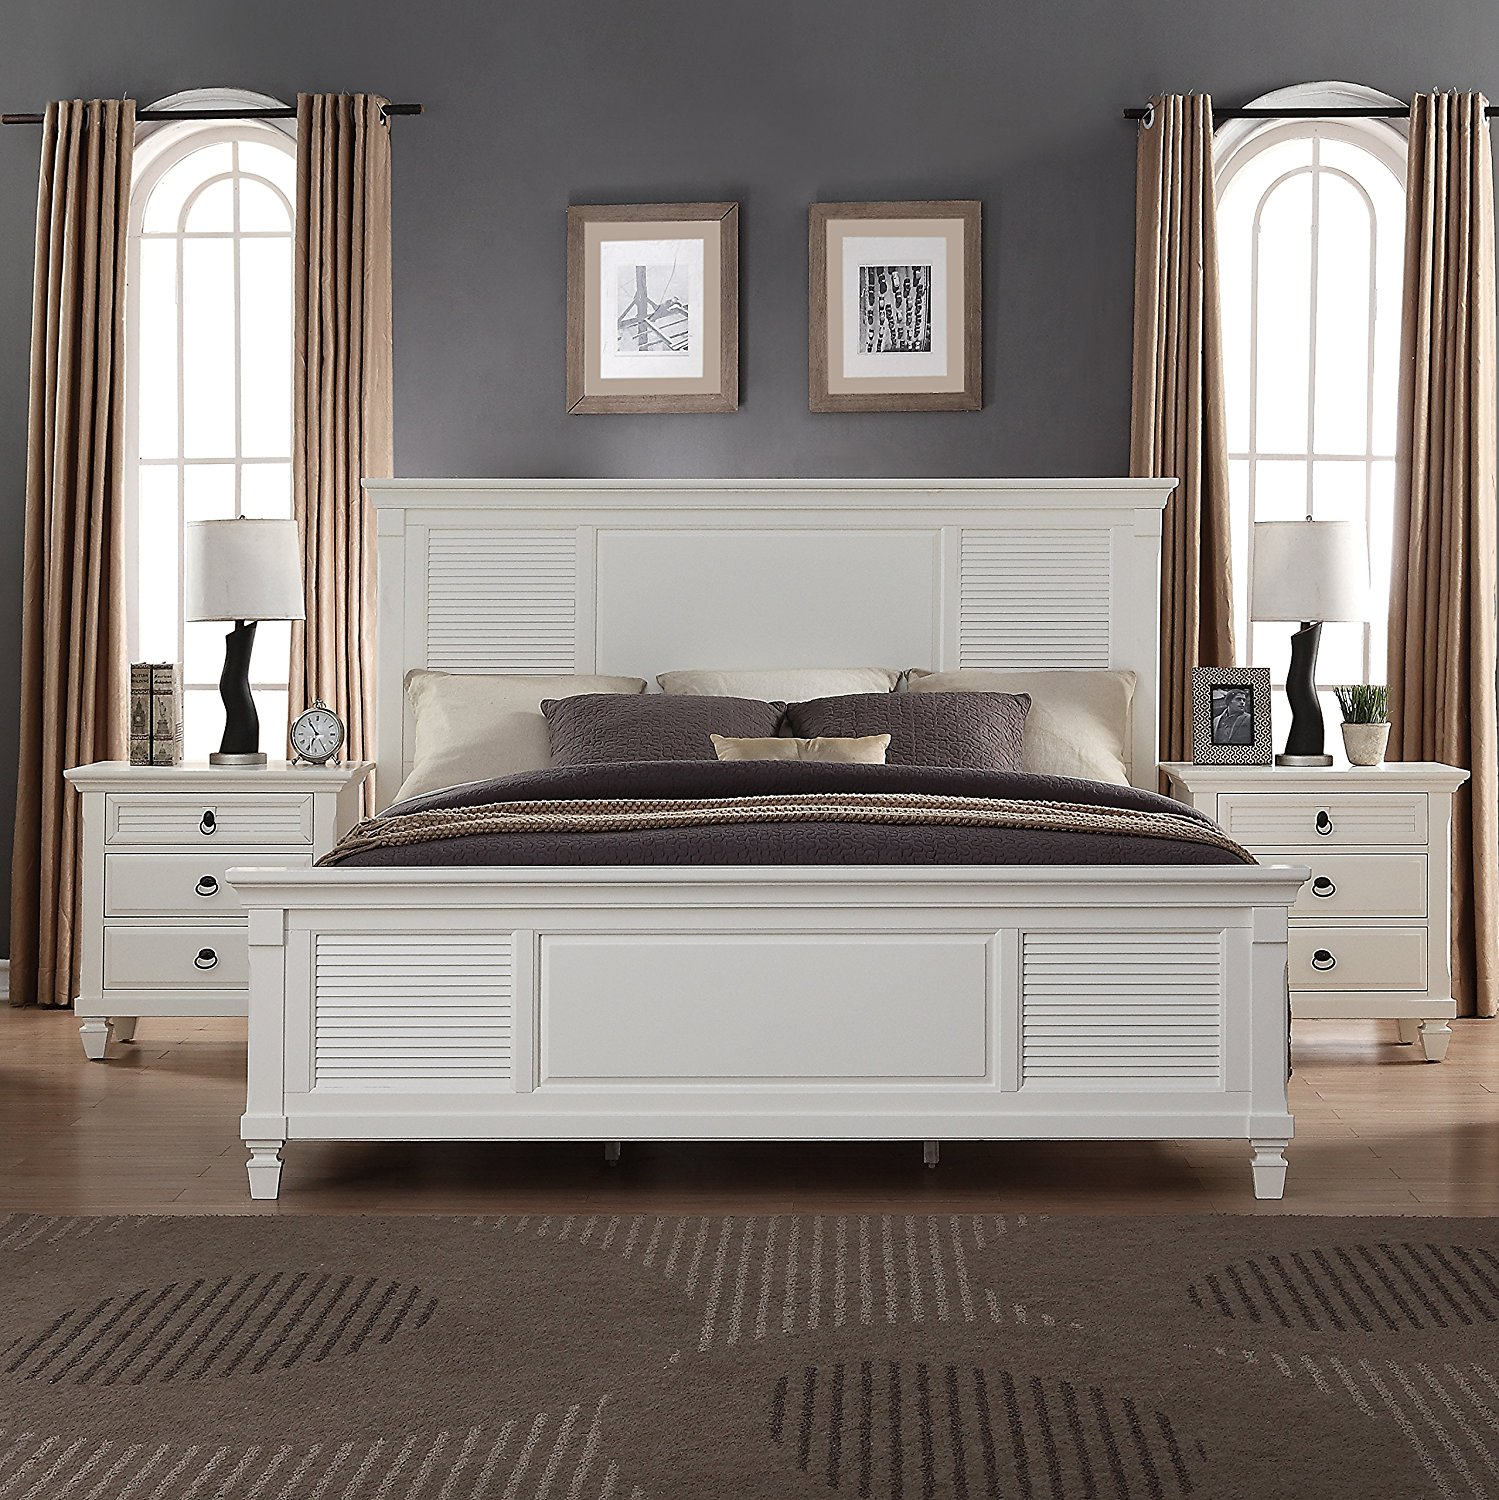 Simply Beautiful and Timeless Feng Shui Bed Collection